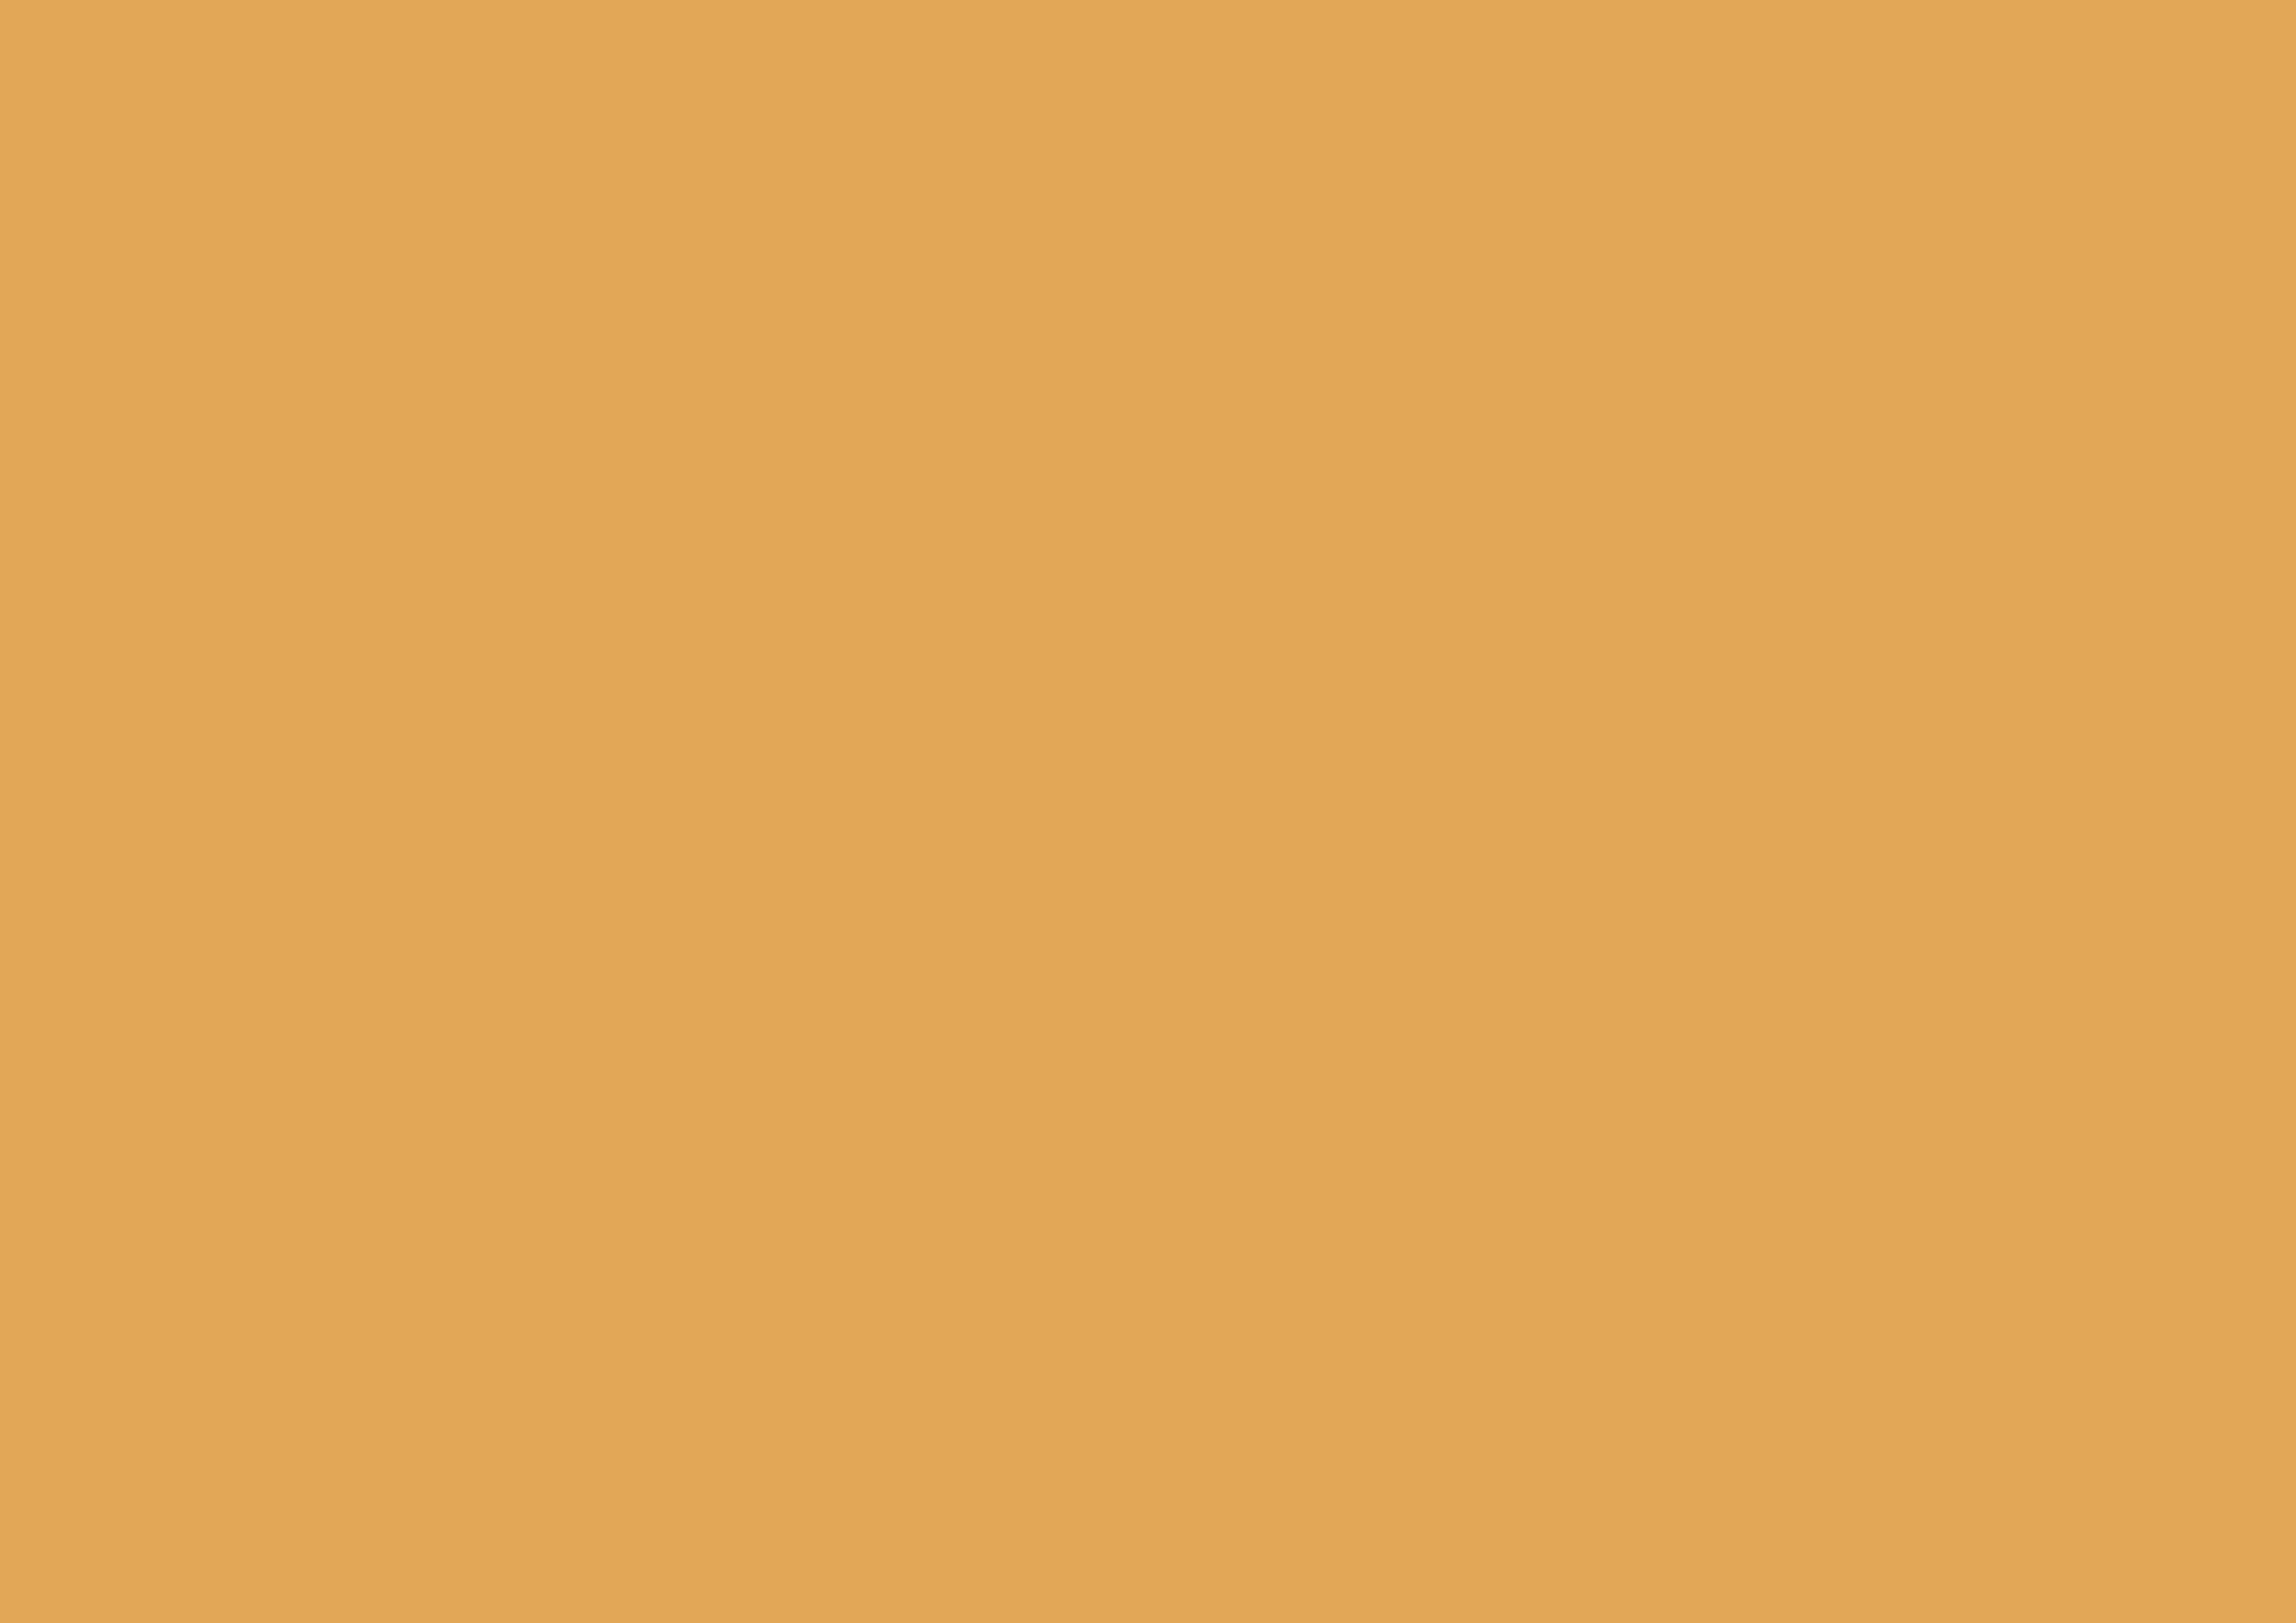 3508x2480 Indian Yellow Solid Color Background